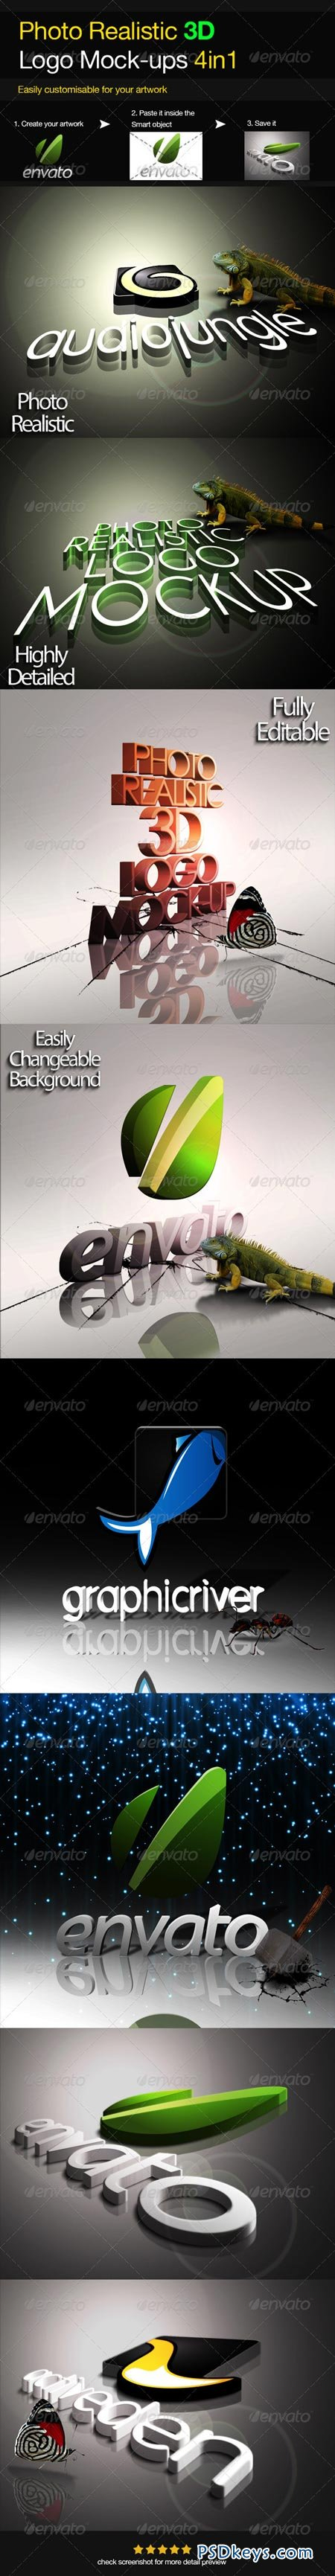 Photo Realistic 3D Logo Mock-up V.2 3693689